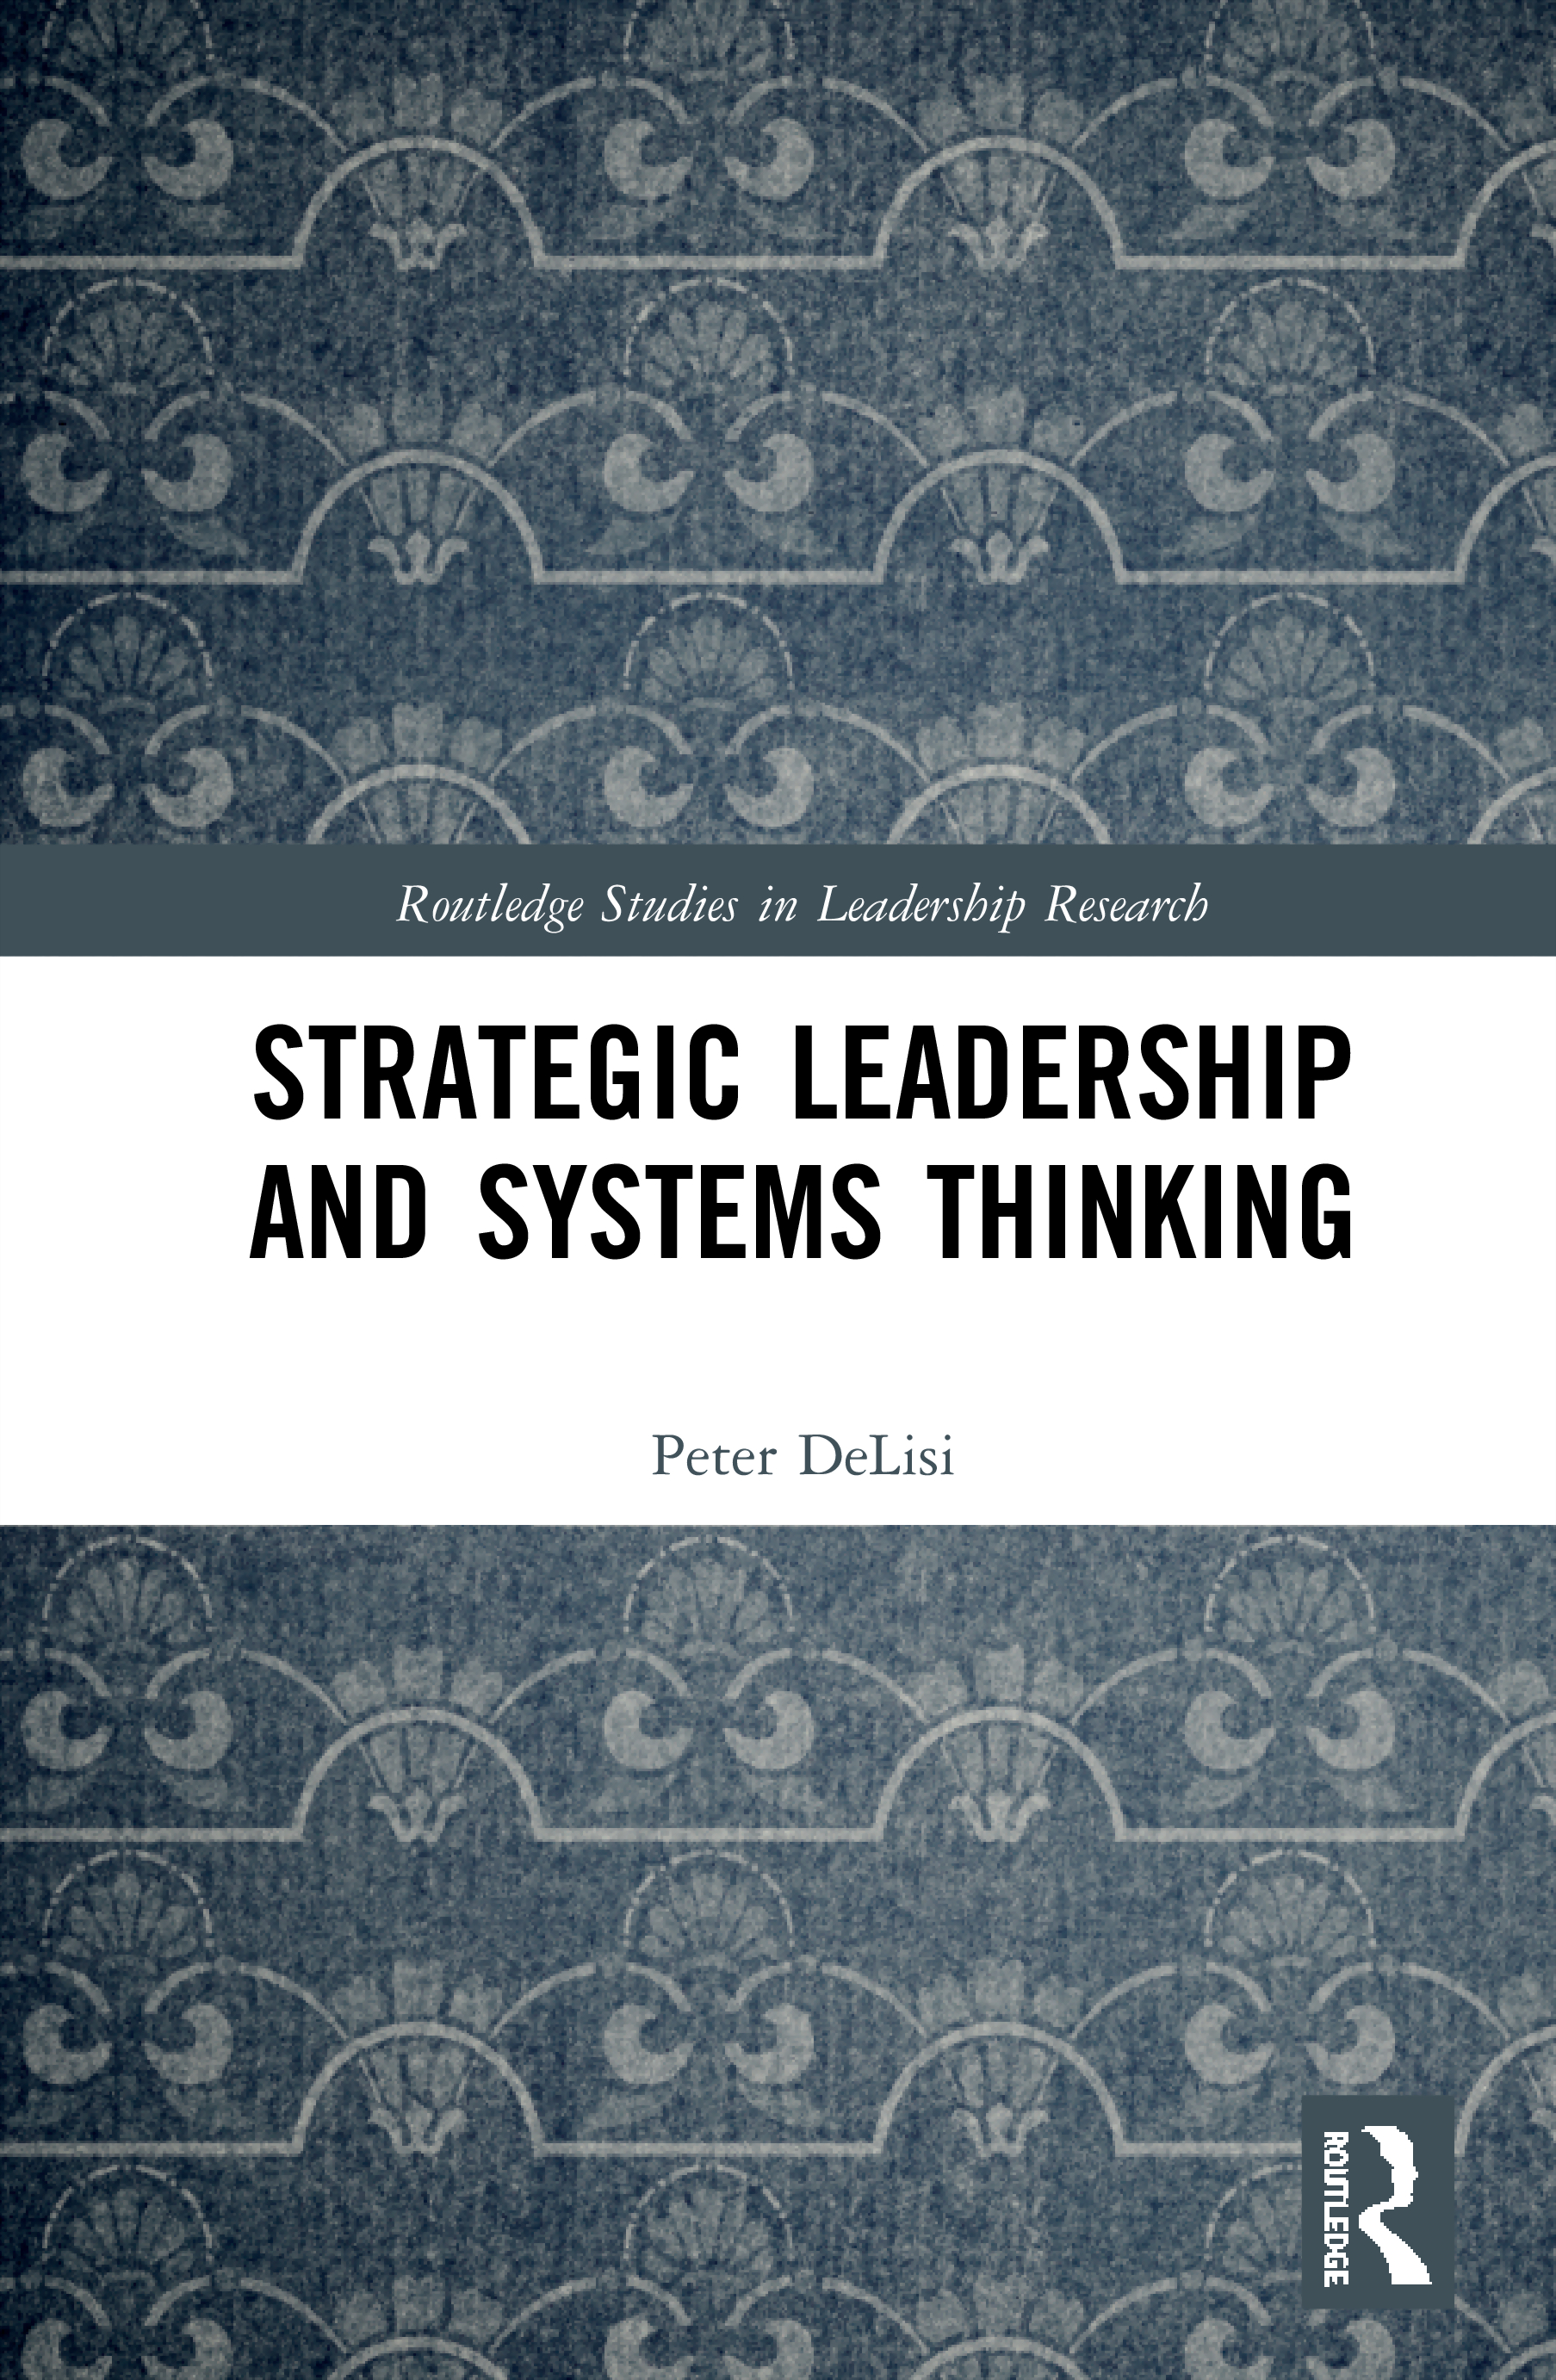 Strategic Leadership and Systems Thinking